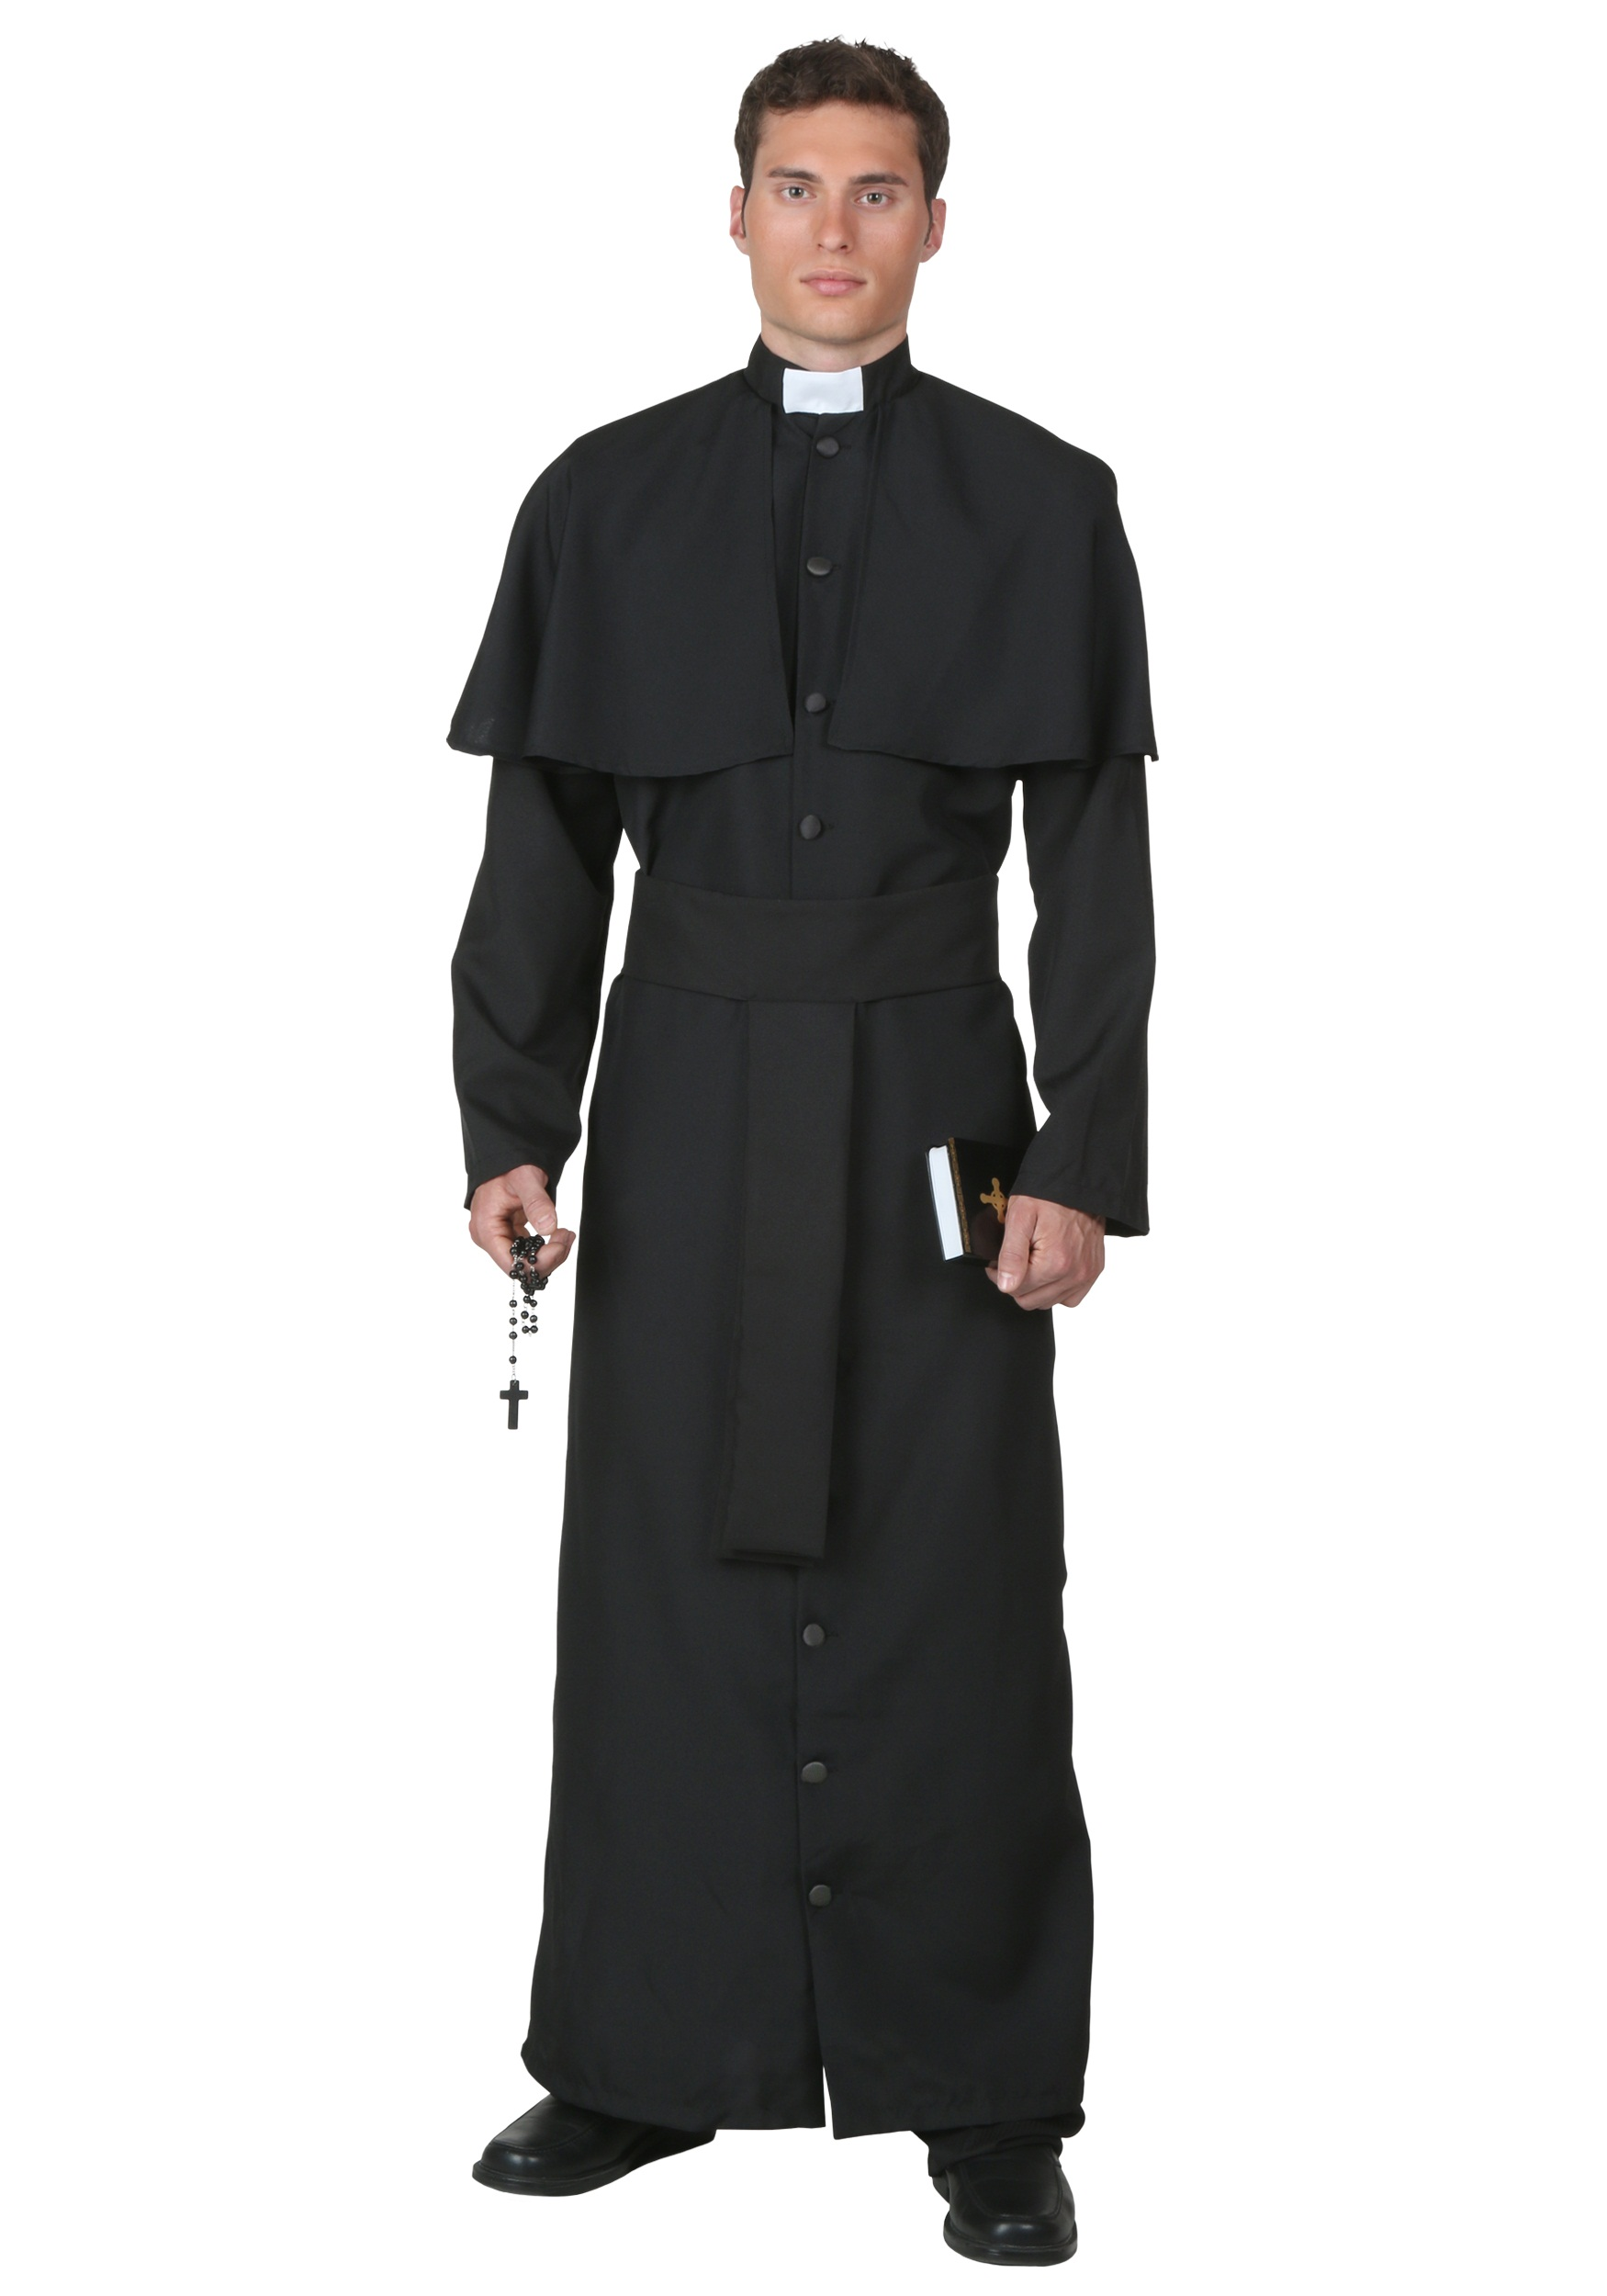 Deluxe Priest Costume-7422